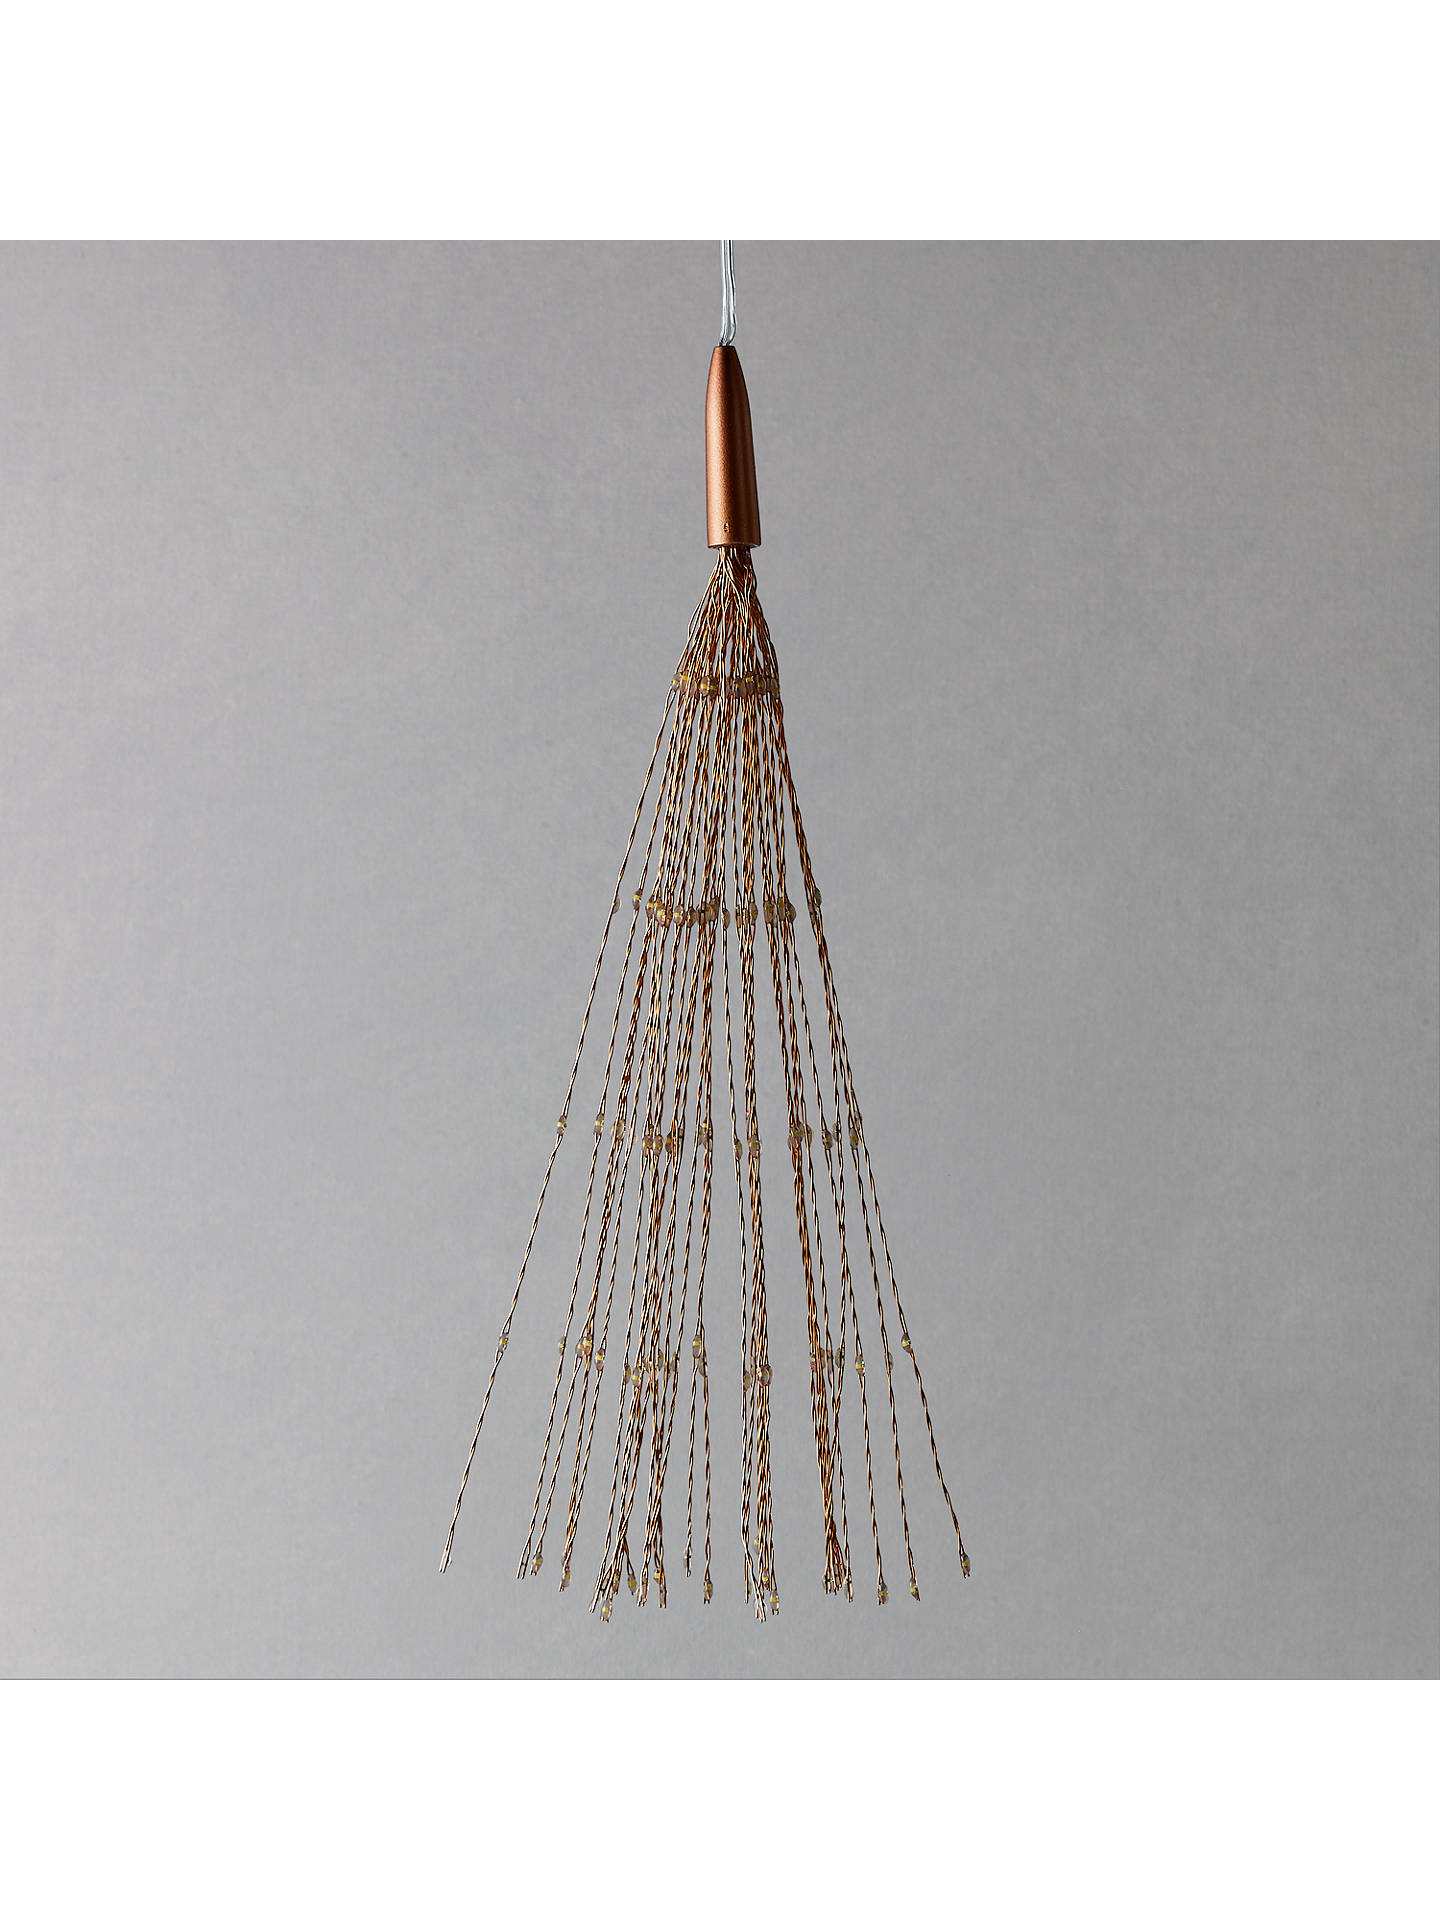 BuyThink Gadgets Starburst Large Hanging Lantern, Copper Online at johnlewis.com